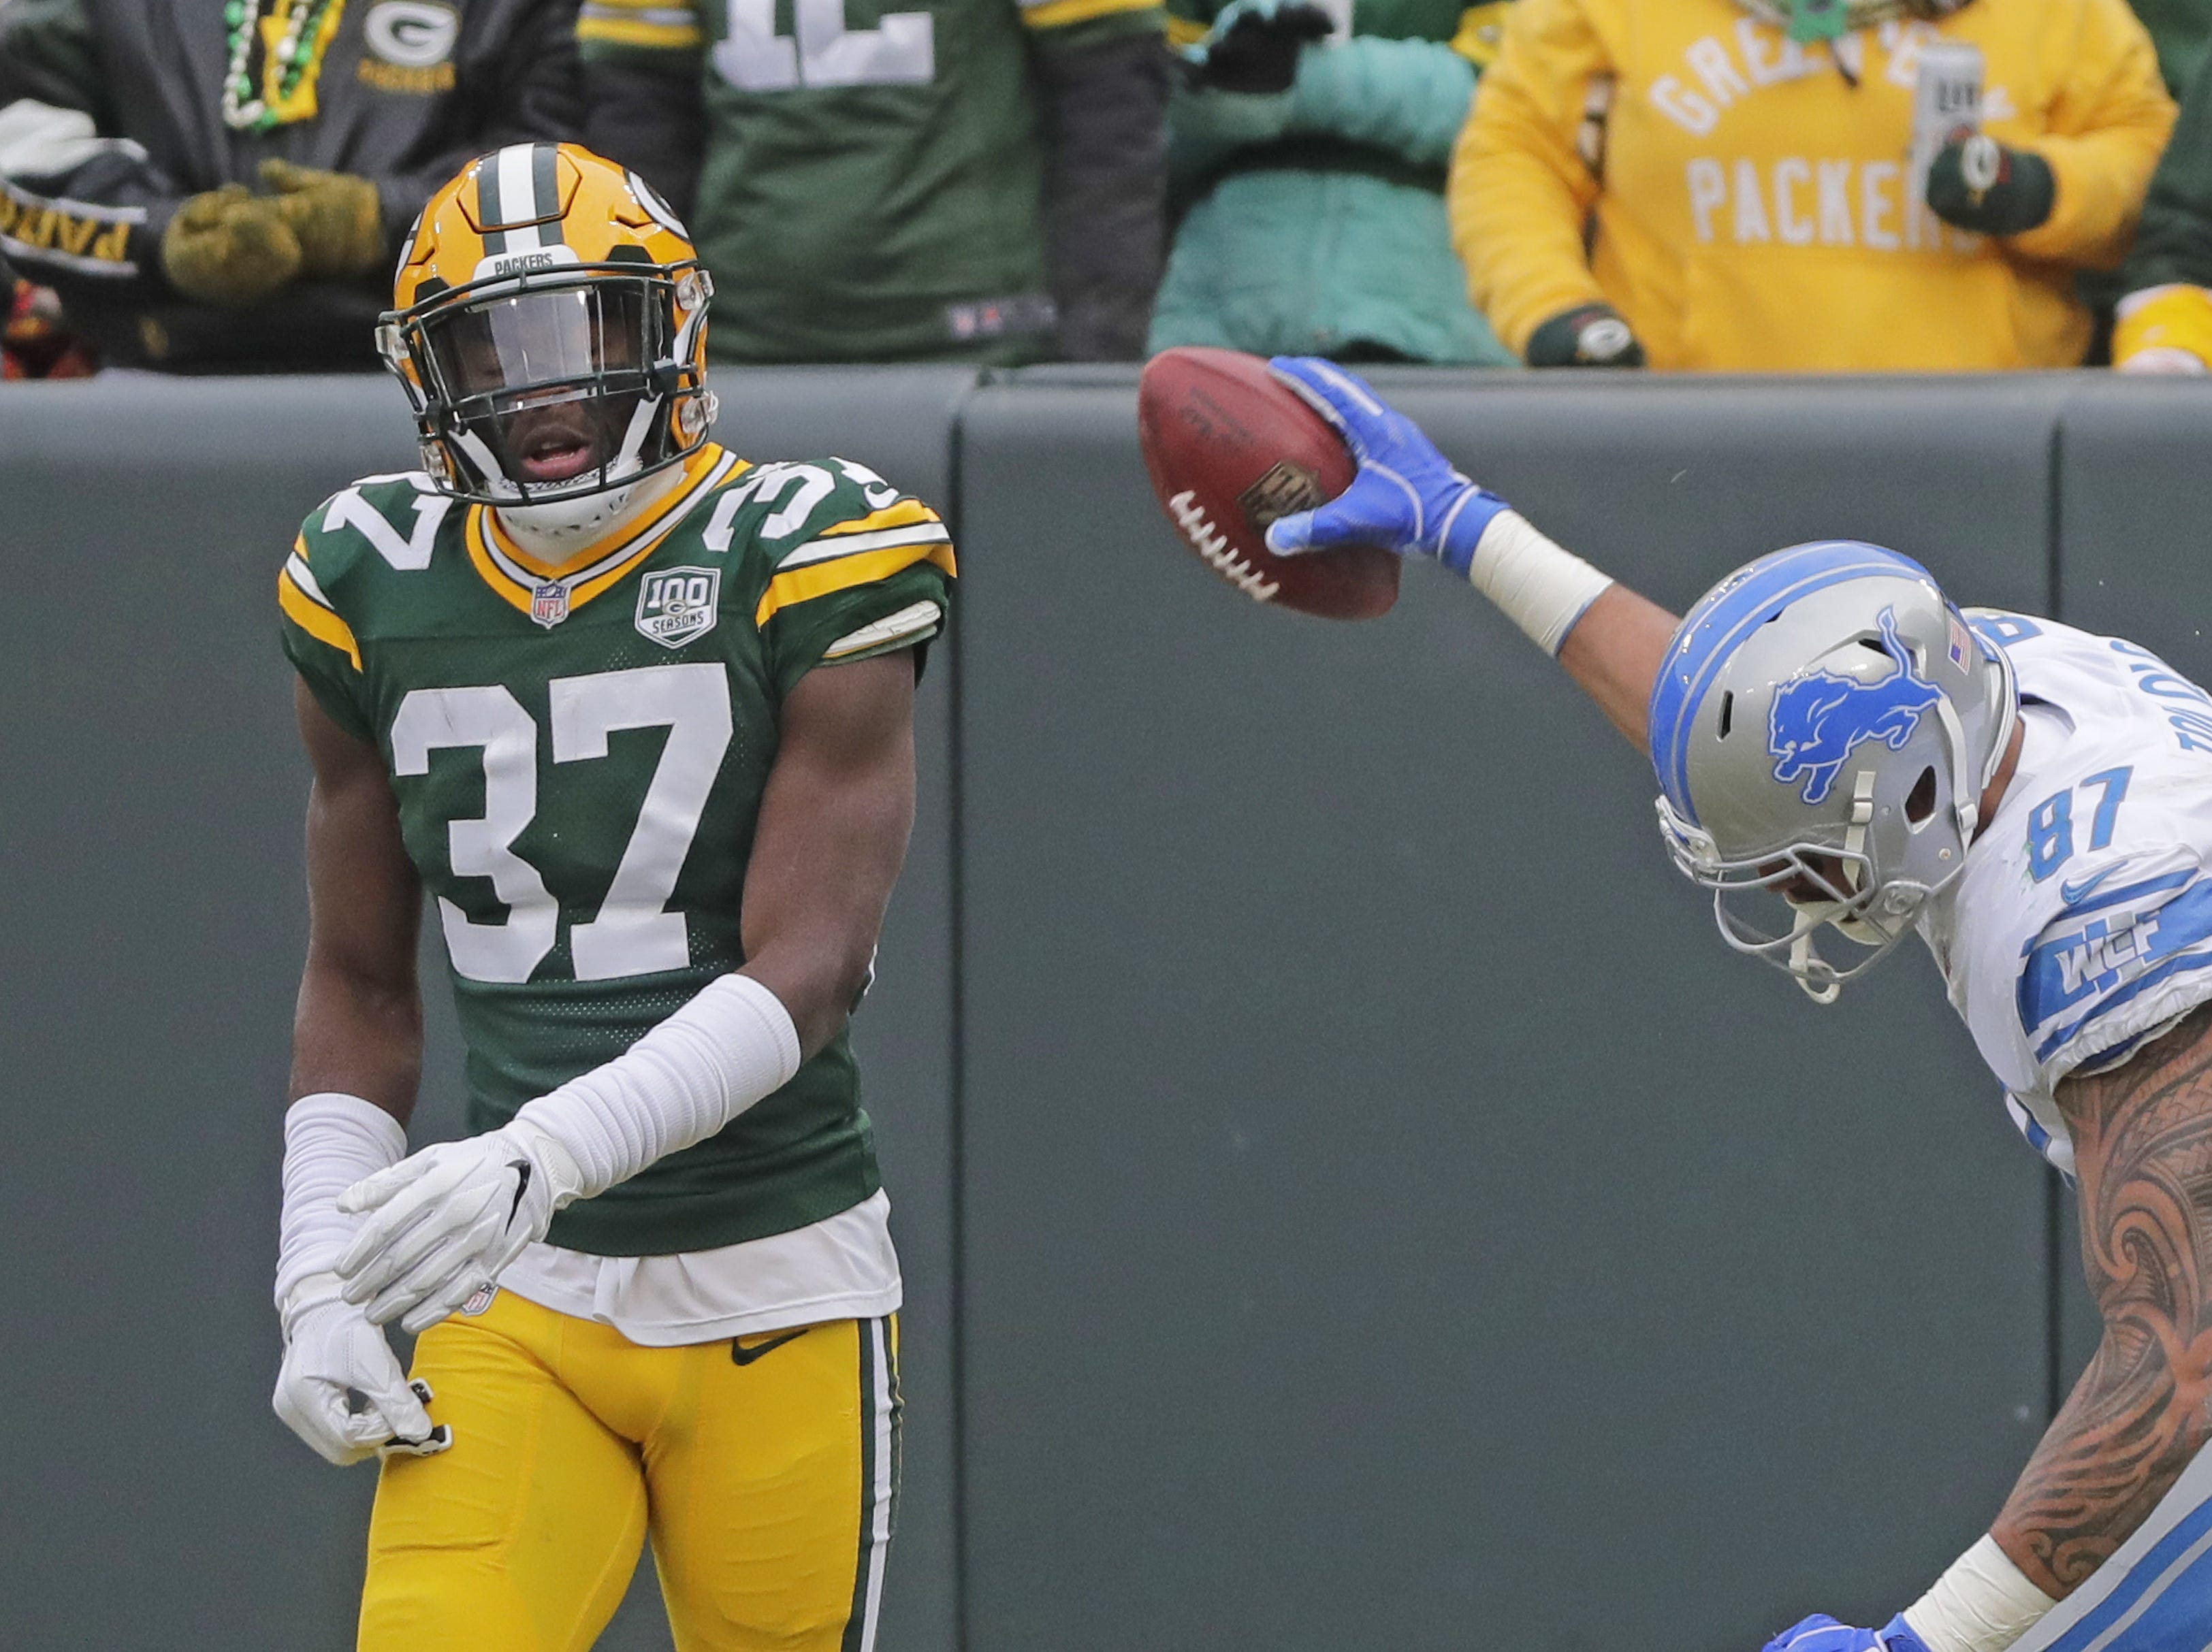 Detroit Lions tight end Levine Toilolo (87) celebrates after scoring a touchdown past the coverage of Green Bay Packers cornerback Josh Jackson (37) in the second quarter at Lambeau Field on Sunday, December 30, 2018 in Green Bay, Wis. Adam Wesley/USA TODAY NETWORK-Wis